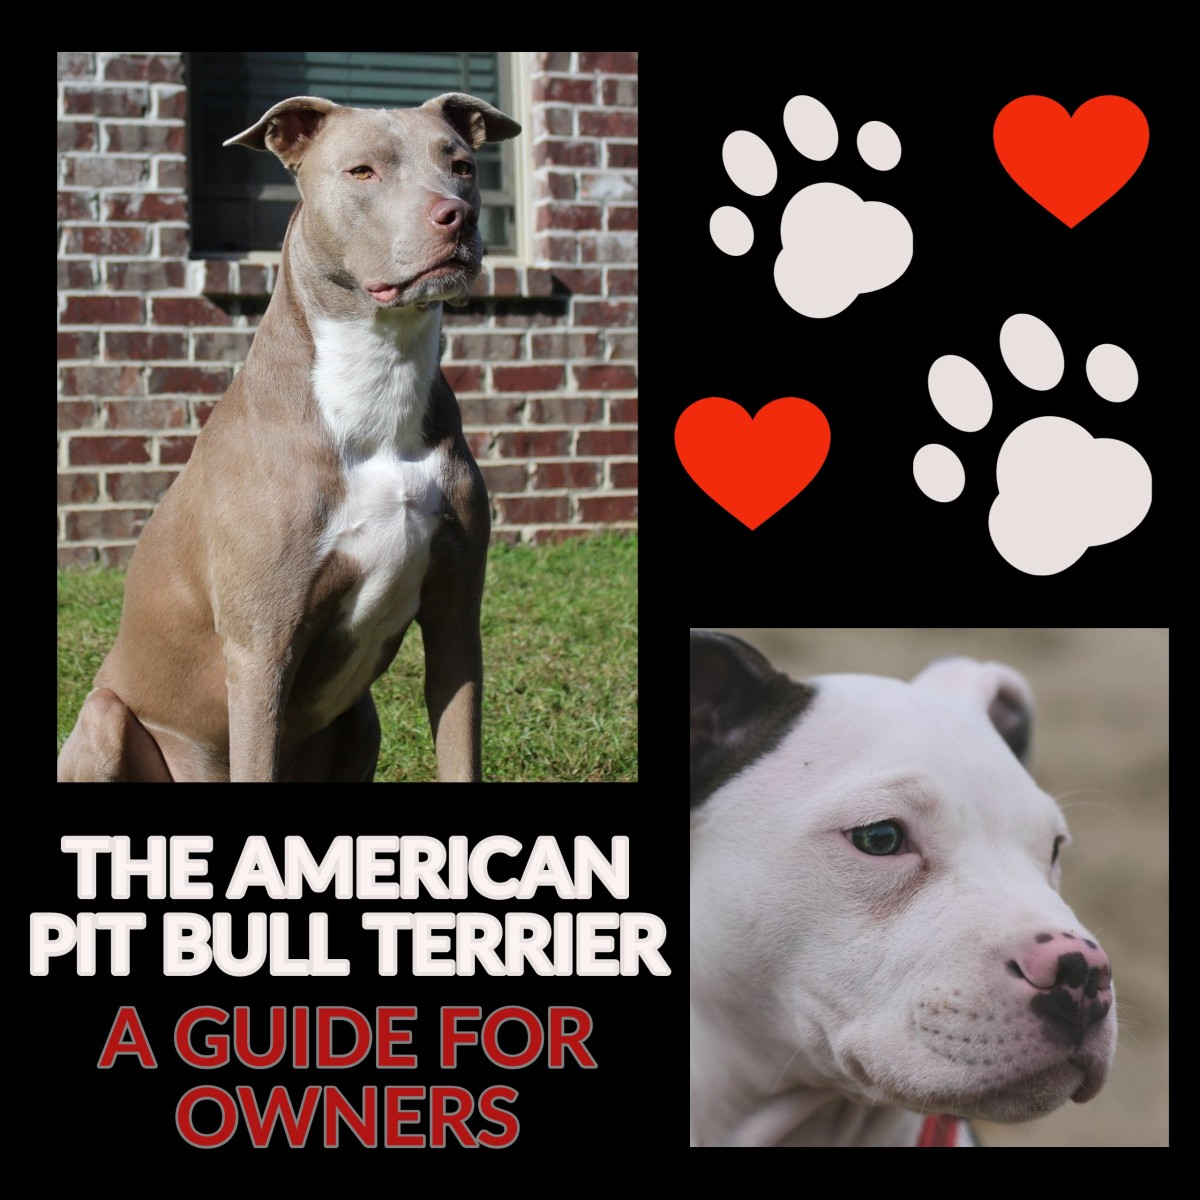 The American Pit Bull Terrier: A Guide for Owners.